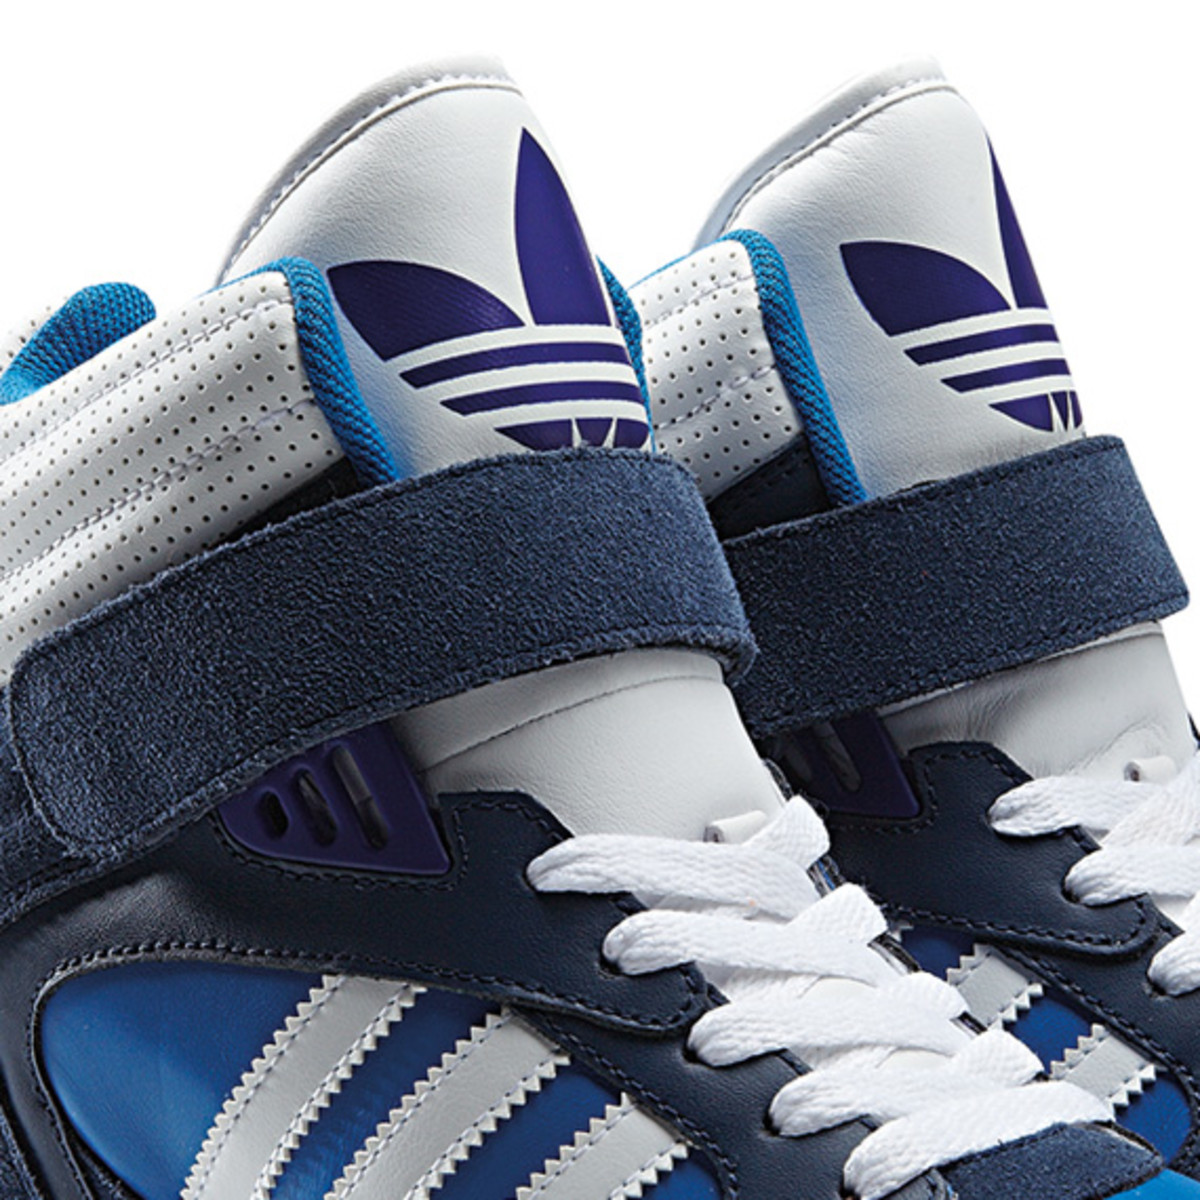 adidas-originals-womens-amberlight-up-sneaker-wedge-fall-winter-2013-g95640-02